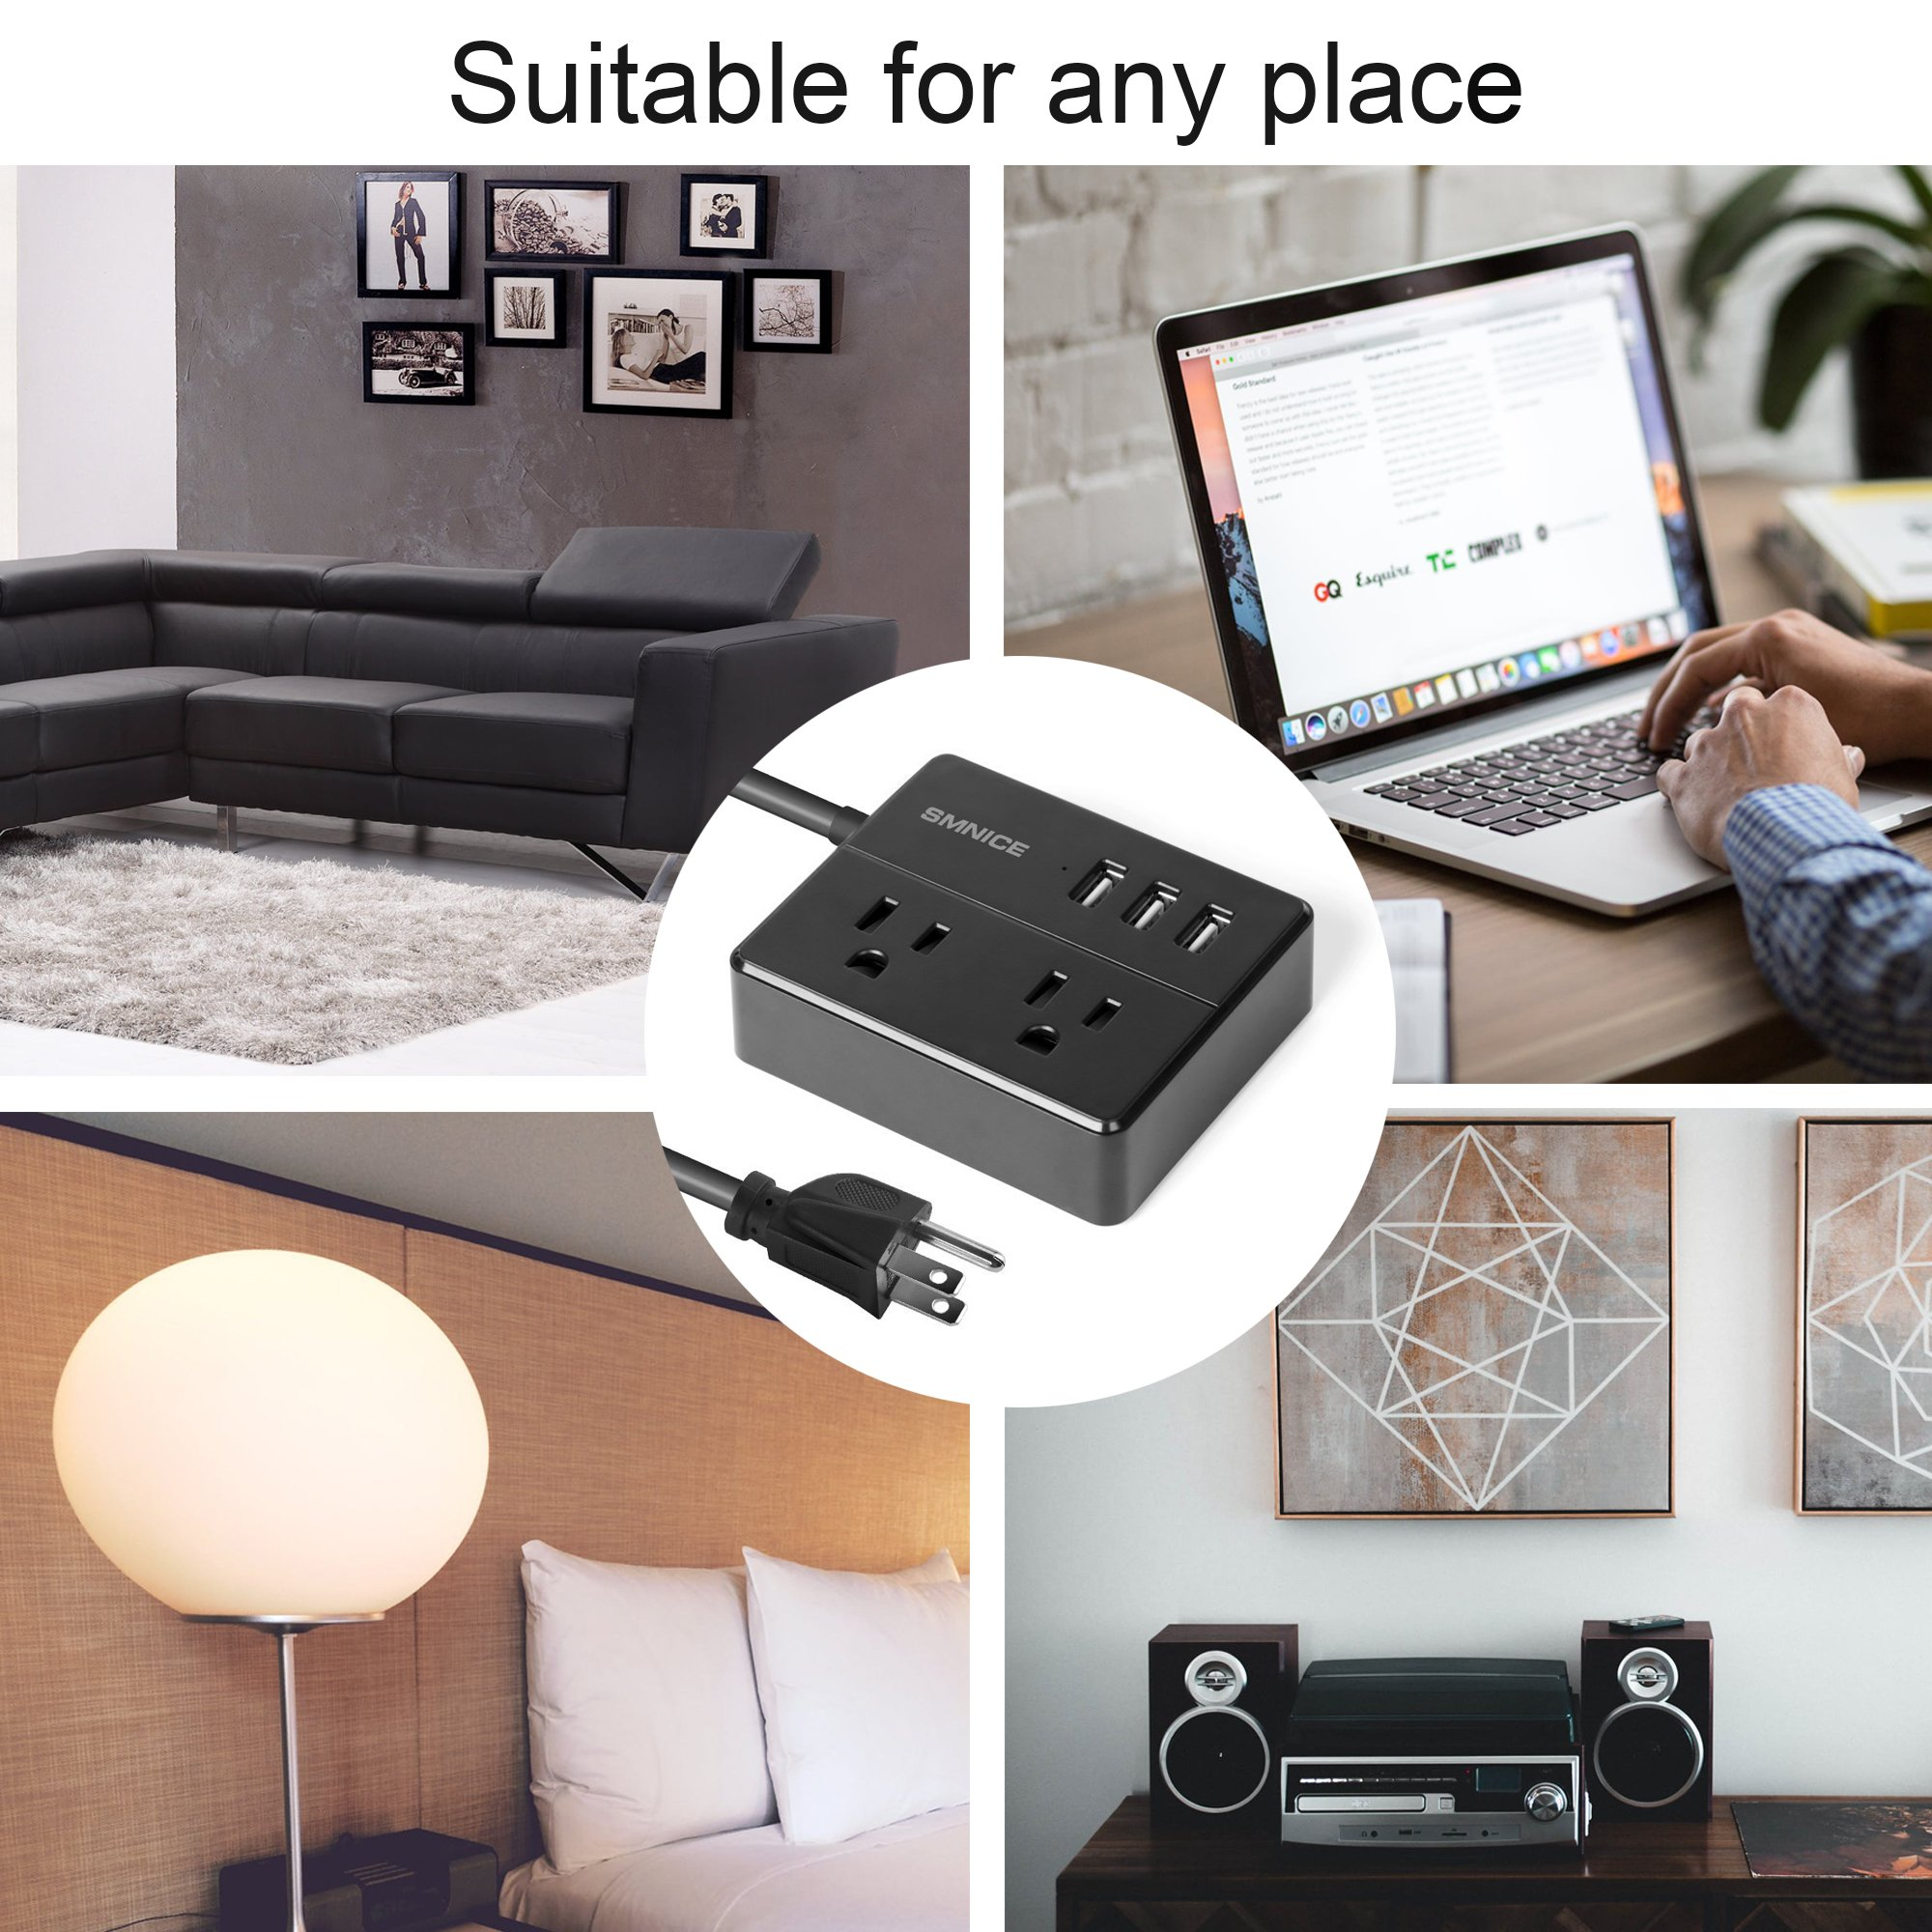 Portable Desktop Power Strip,SMNICE Travel Power Strip with 3 USB Smart Charging Station 2 Outlets and Child Safety Cover for Home Travel,5Ft Cord-BLACK (Black) by SMNICE (Image #7)